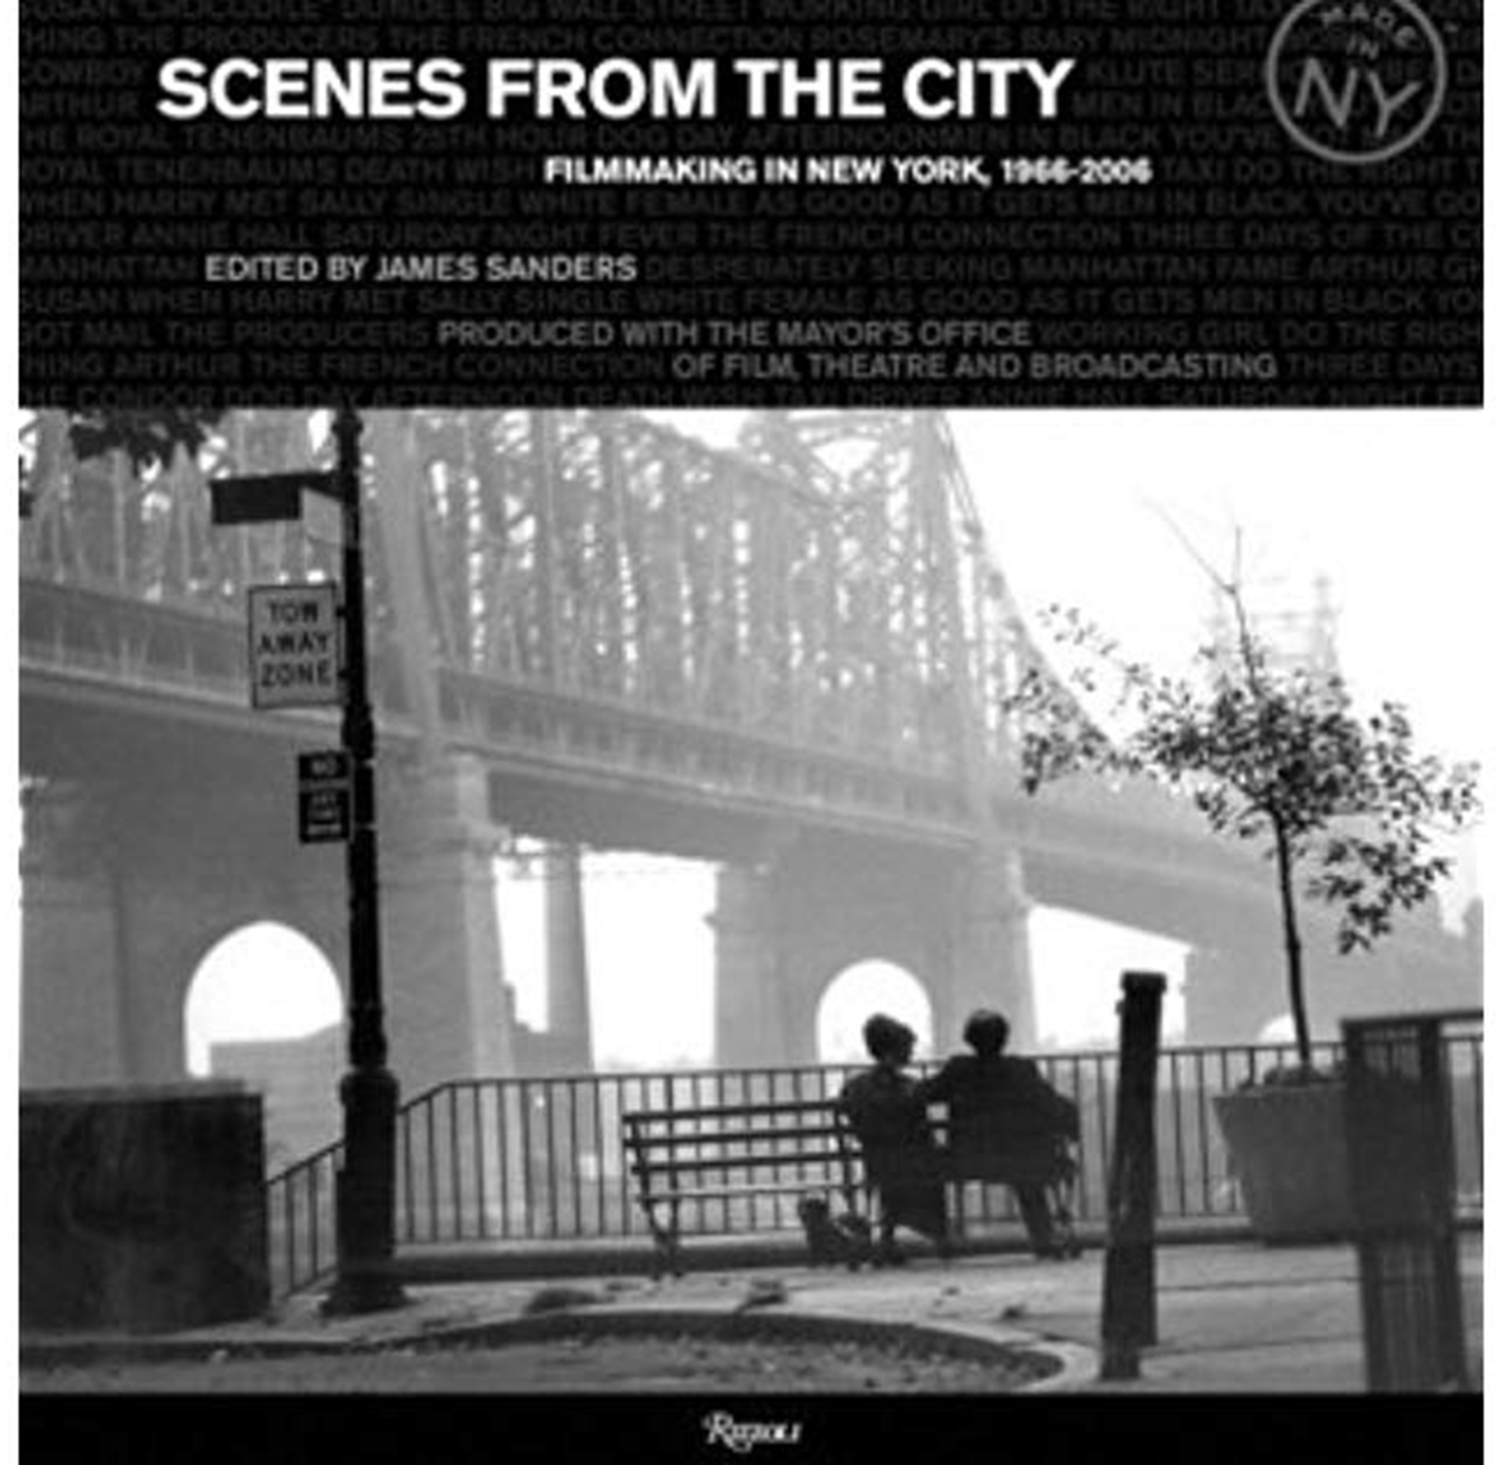 Scenes from the City- Film-making in New York, 1966-2006  .jpg